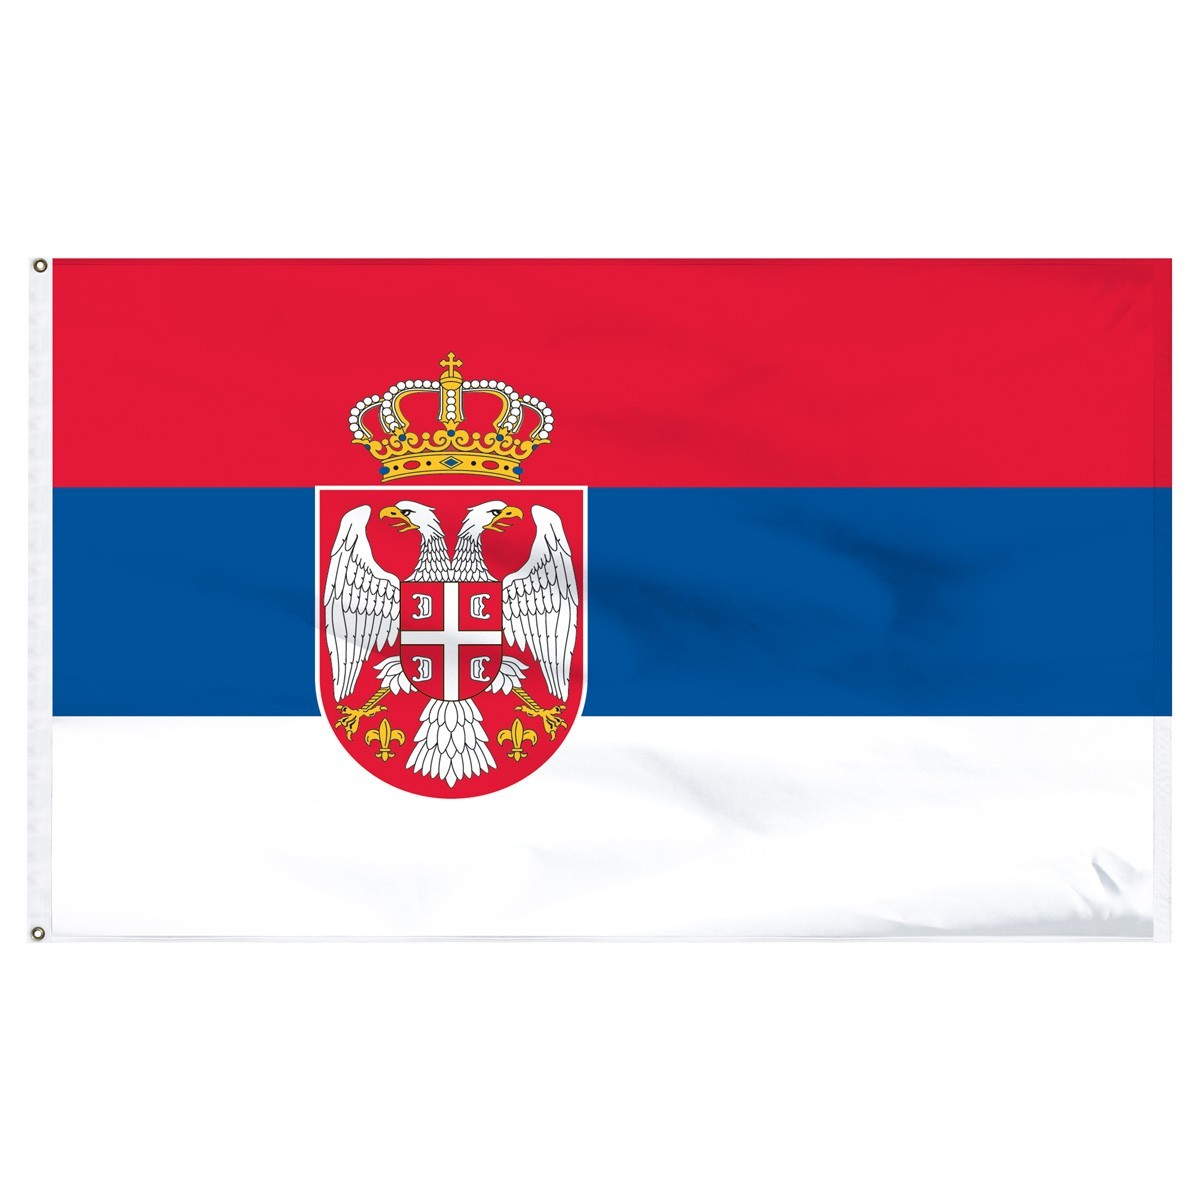 Serbia 3' x 5' Outdoor Nylon Flag